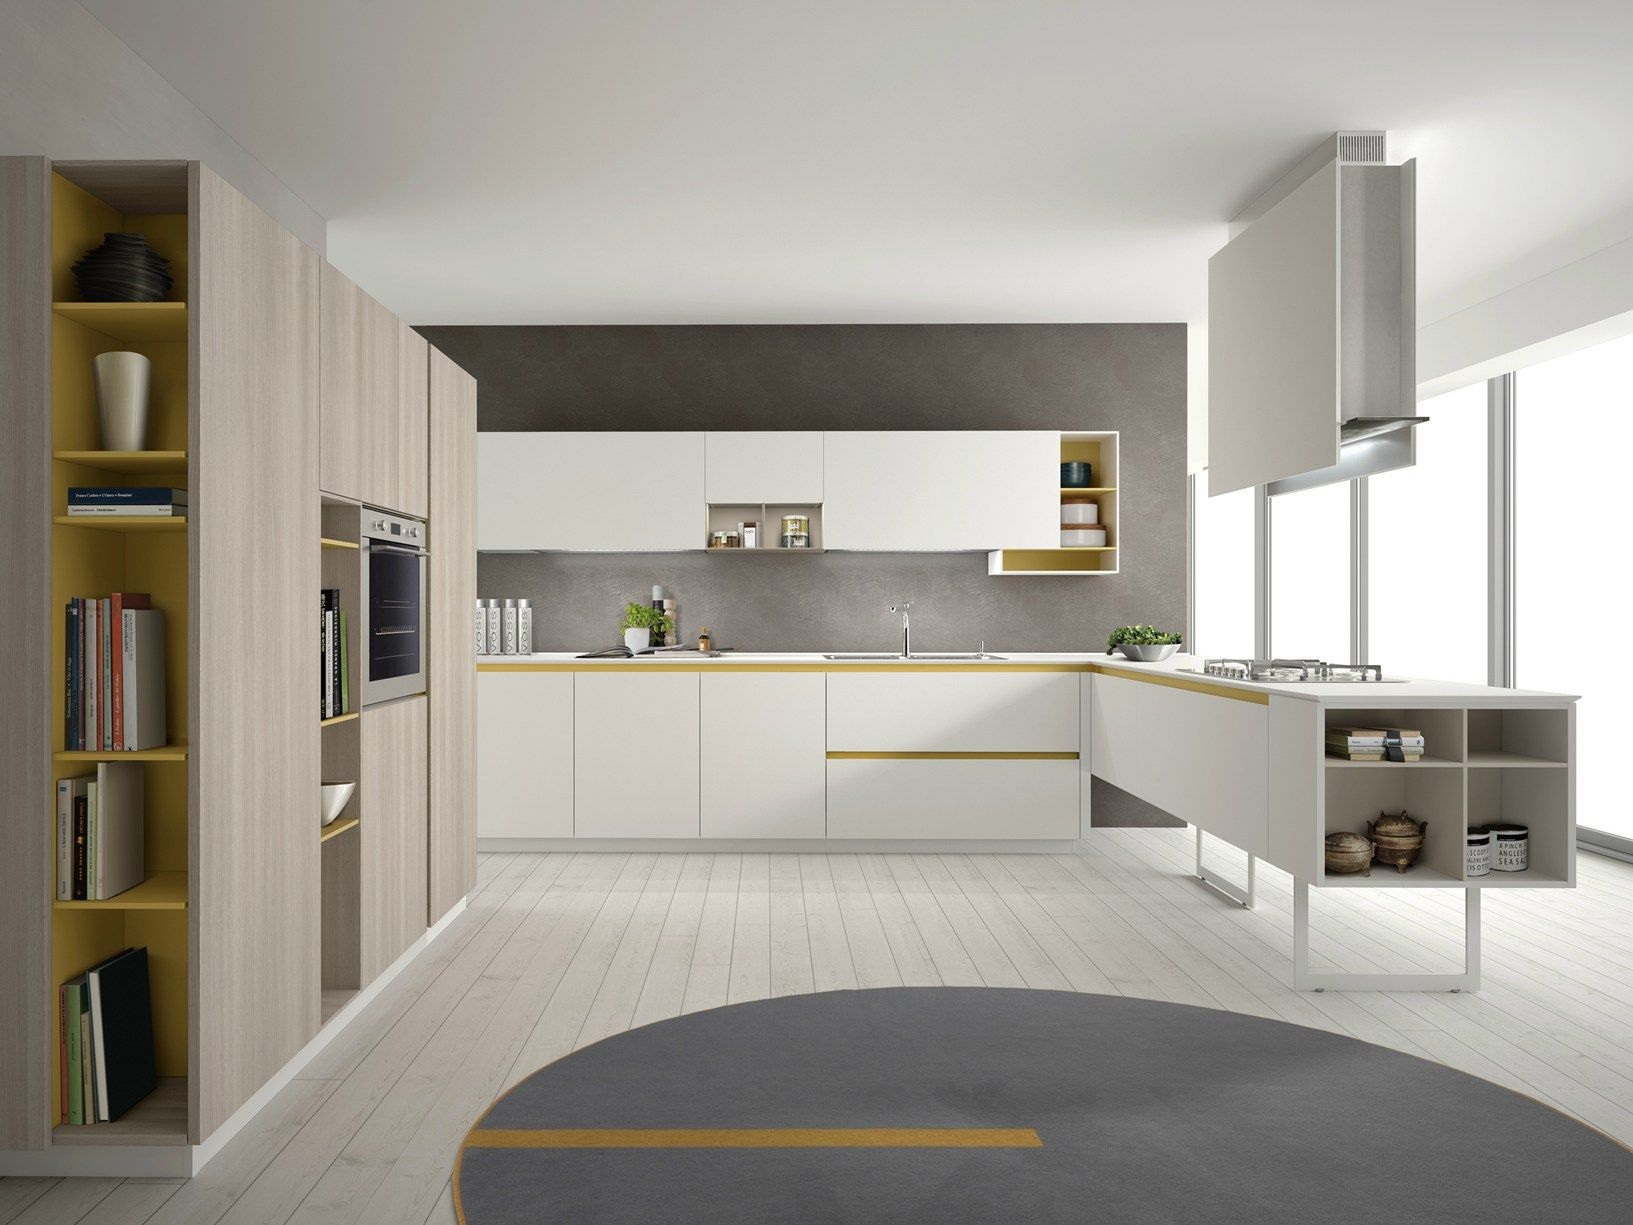 Euromobil Group presents the \'Total Home\' at iSaloni 2014